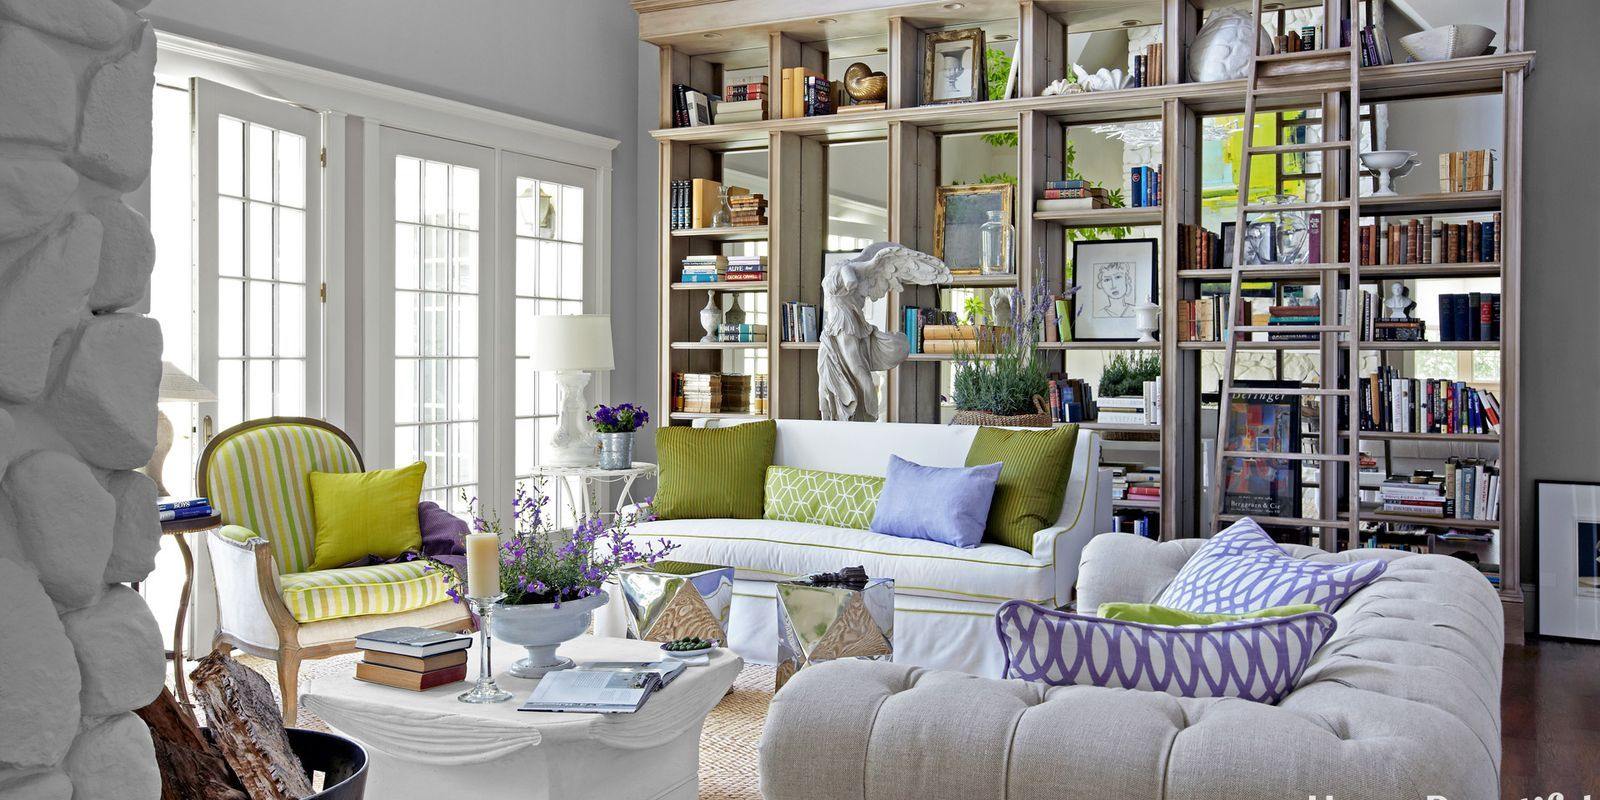 Add Some Excitement To Your Shelves With These Ideas.